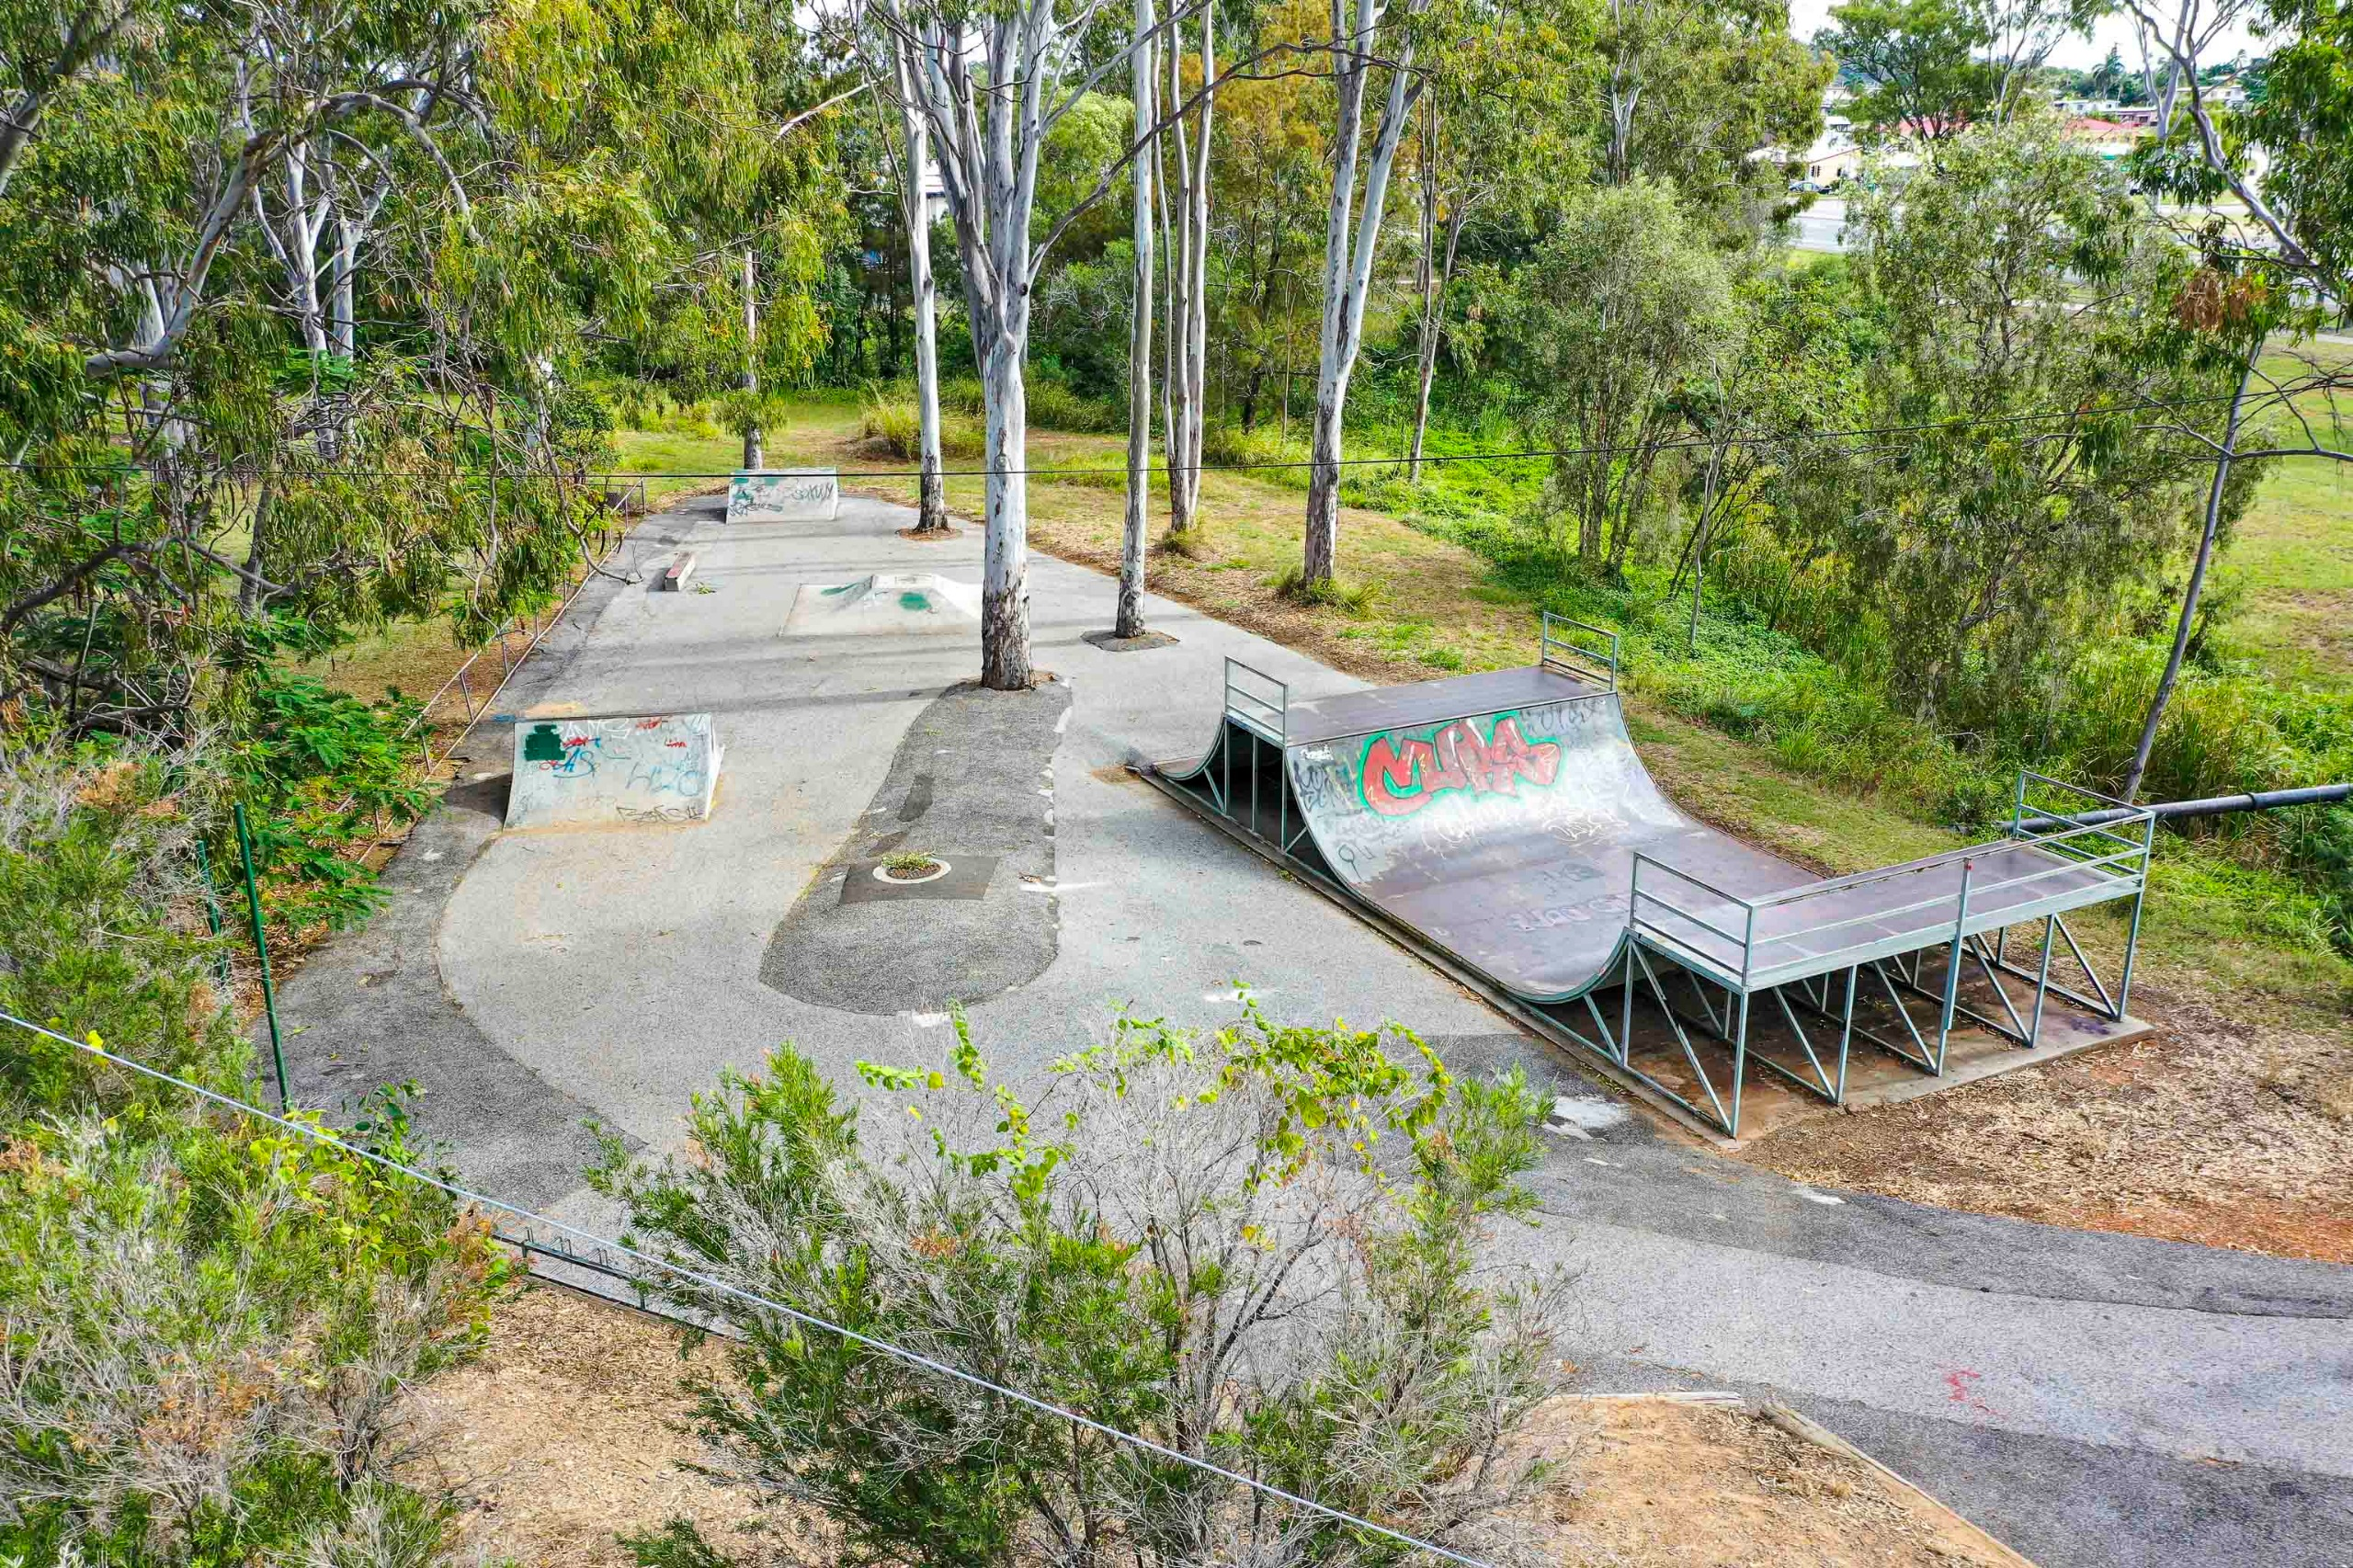 Picture of Cassy Lives Skate Park as it stands today